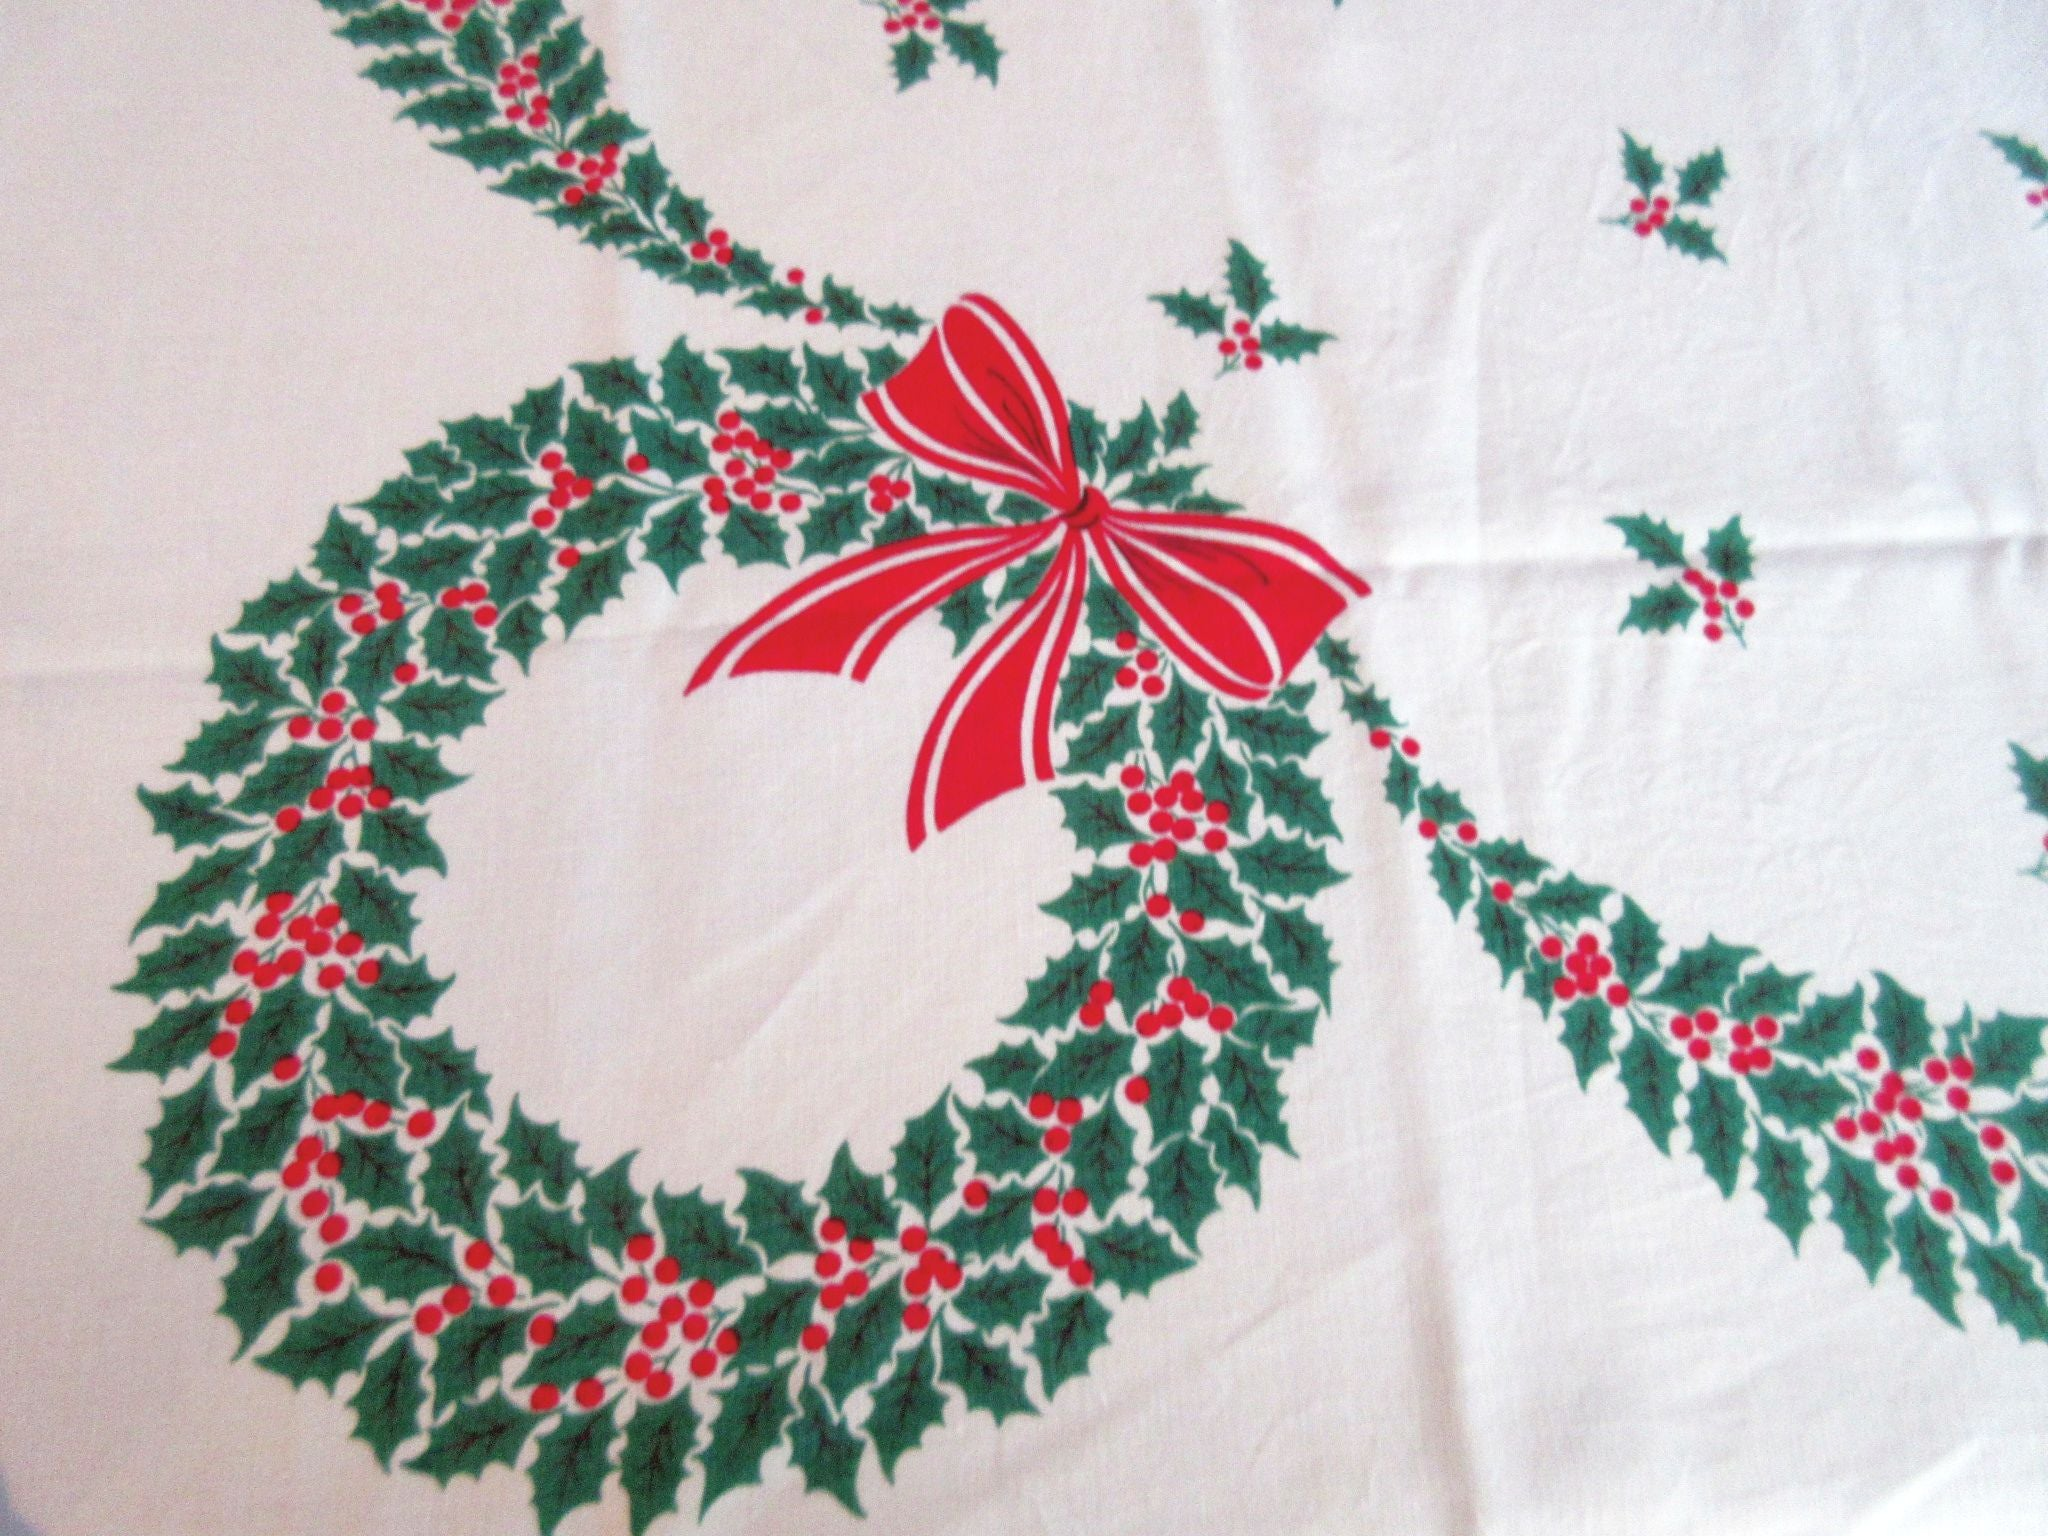 Hardy Craft Red Green Holly Ribbons Linen Christmas Vintage Printed Tablecloth (67 X 50)